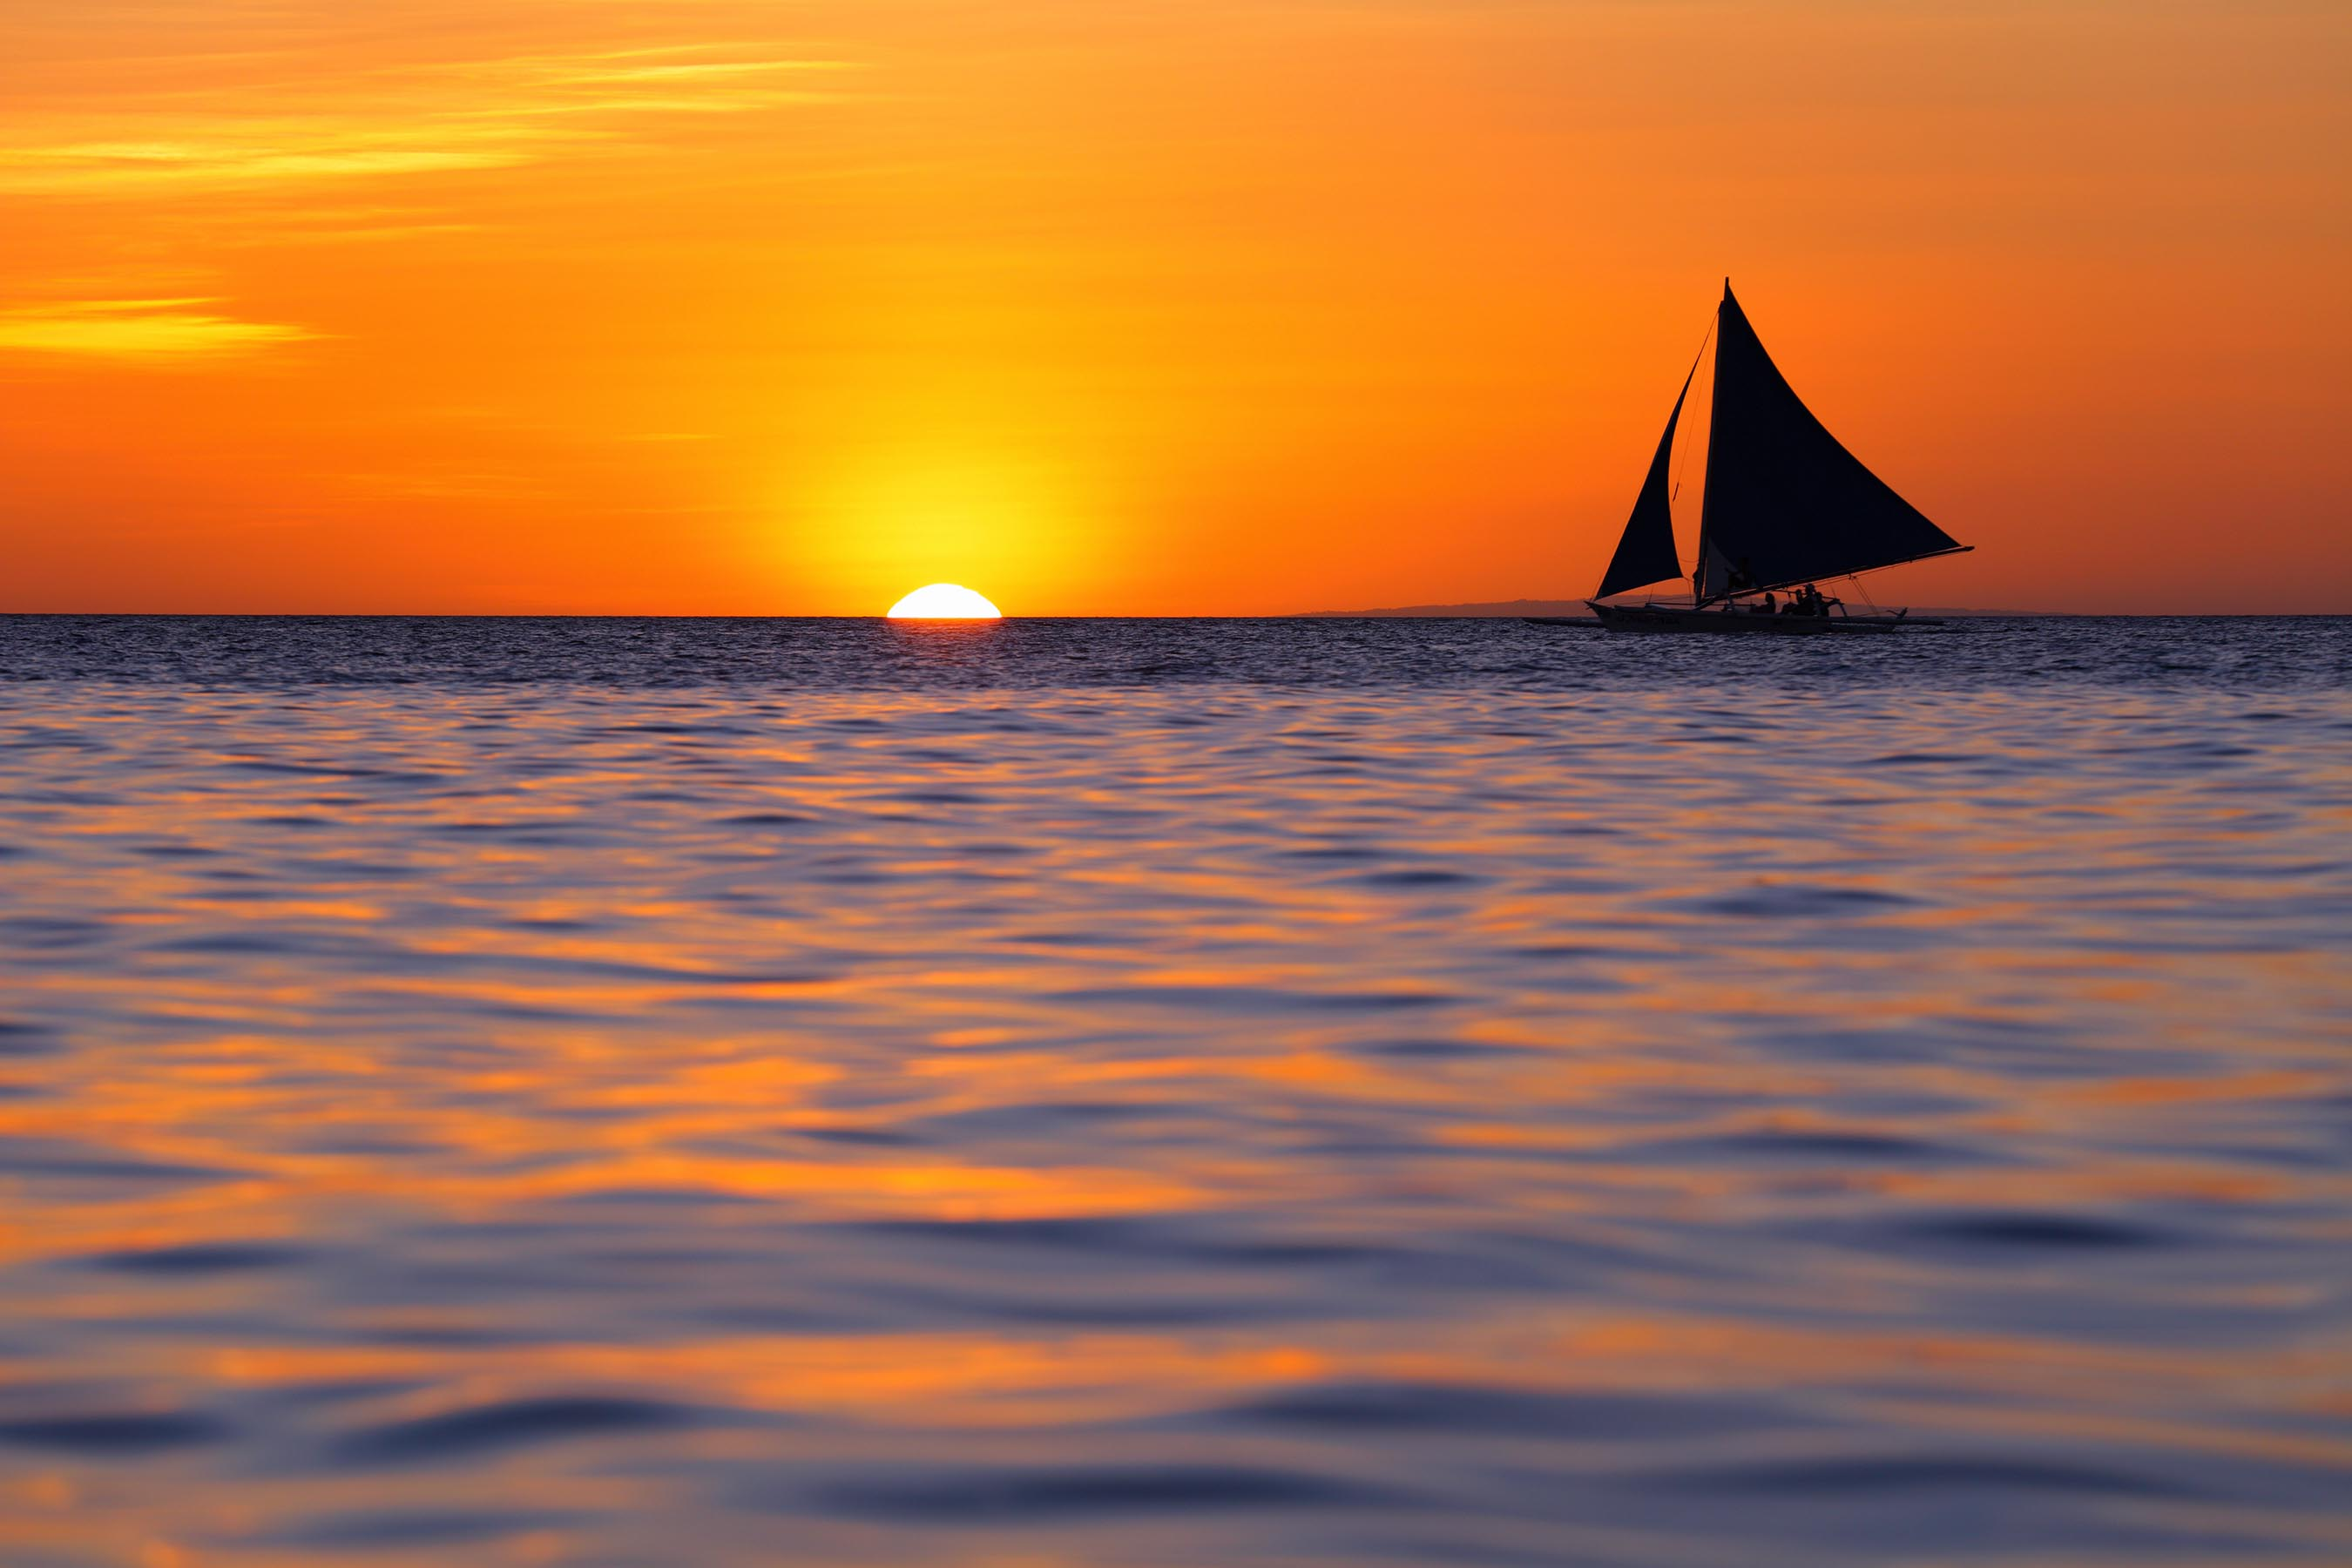 Sailing during a sunset